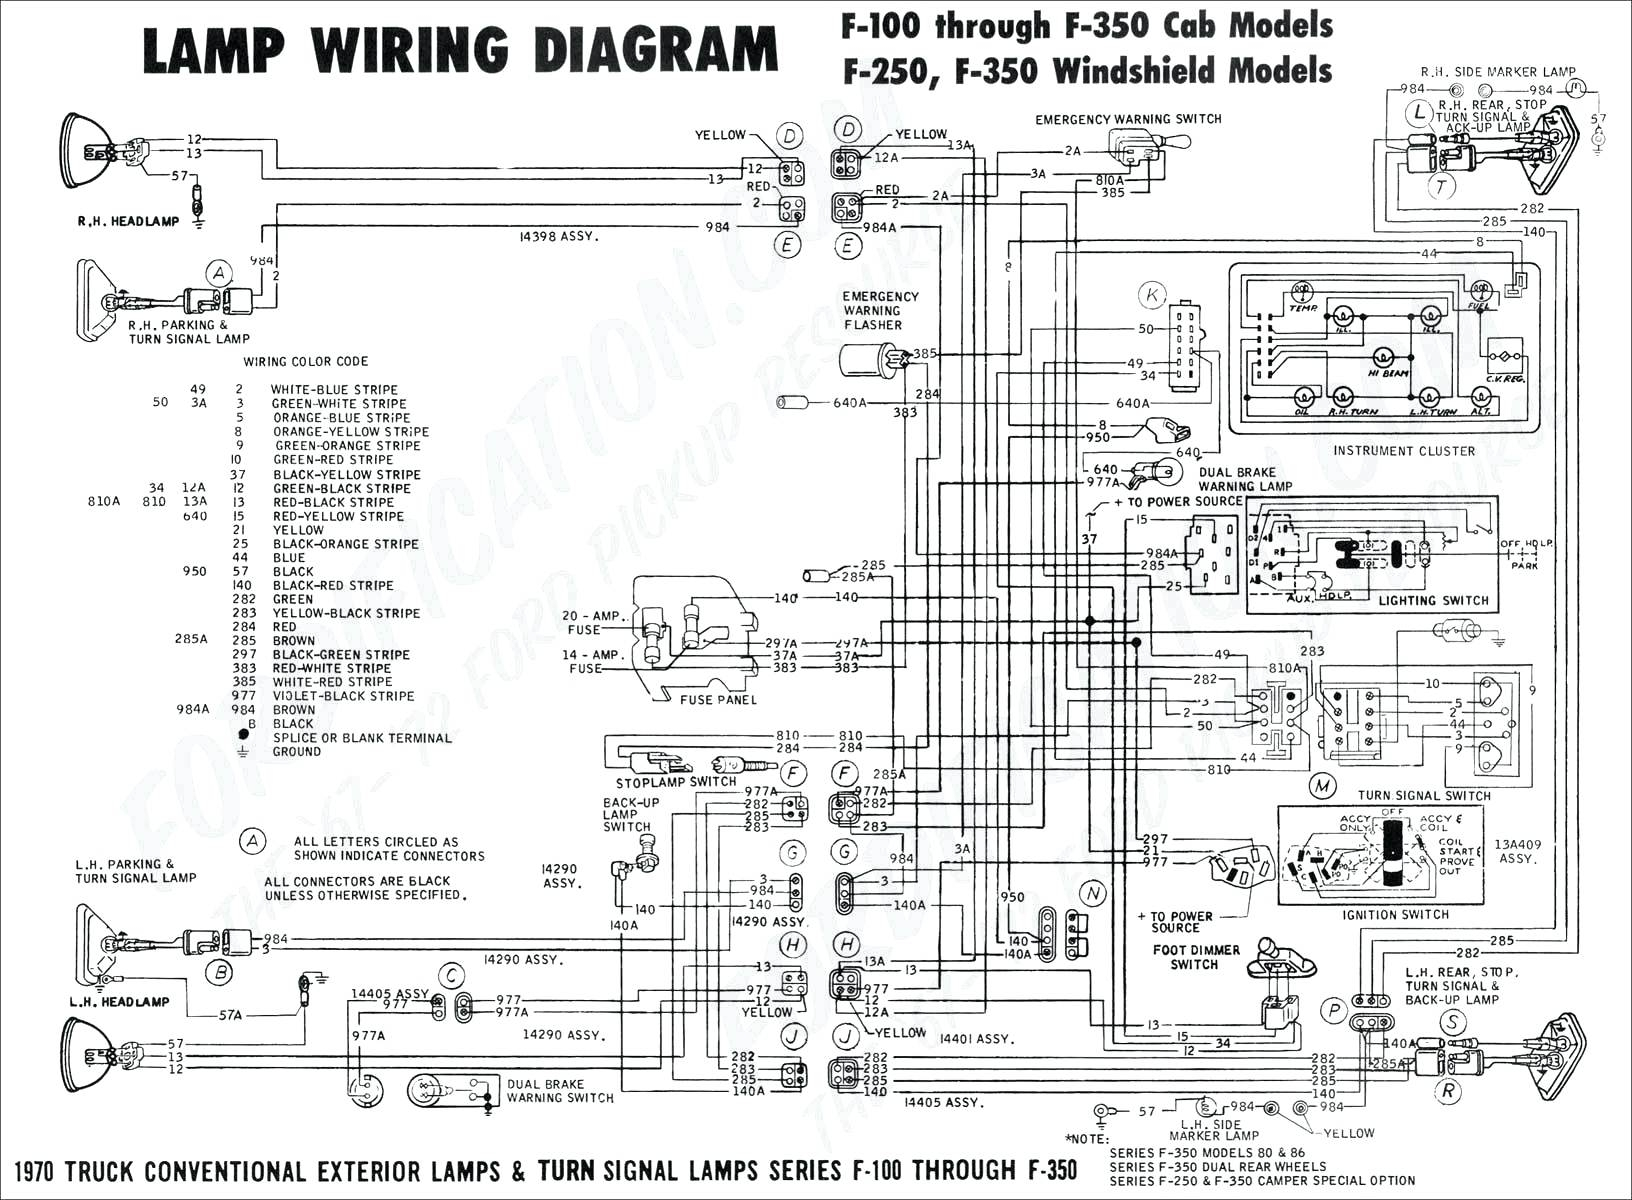 ford f250 starter solenoid wiring diagram Collection-1996 f150 trailer wiring diagram anything wiring diagrams u2022 rh johnparkinson me 96 F150 Wiring Diagram 10-s